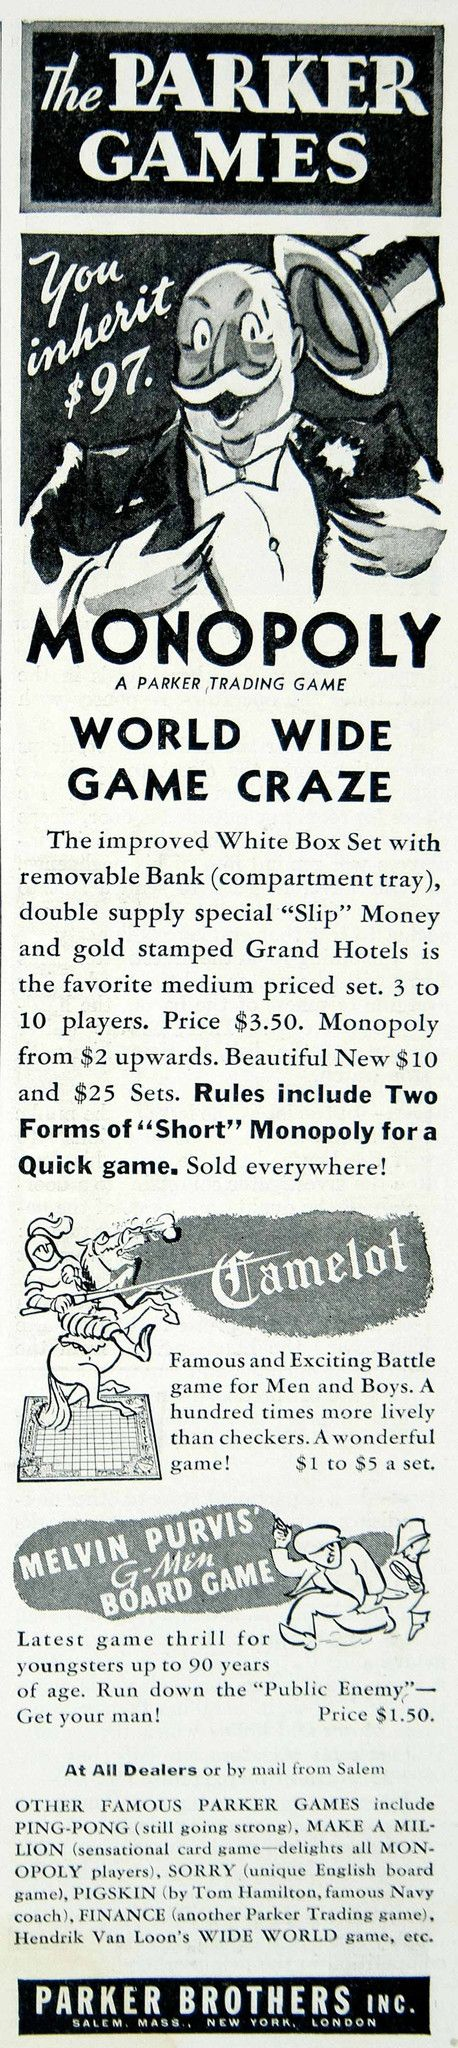 1936 Ad Parker Brothers Board Games Monopoly Camelot Melvin Purvis G-Men YLD5